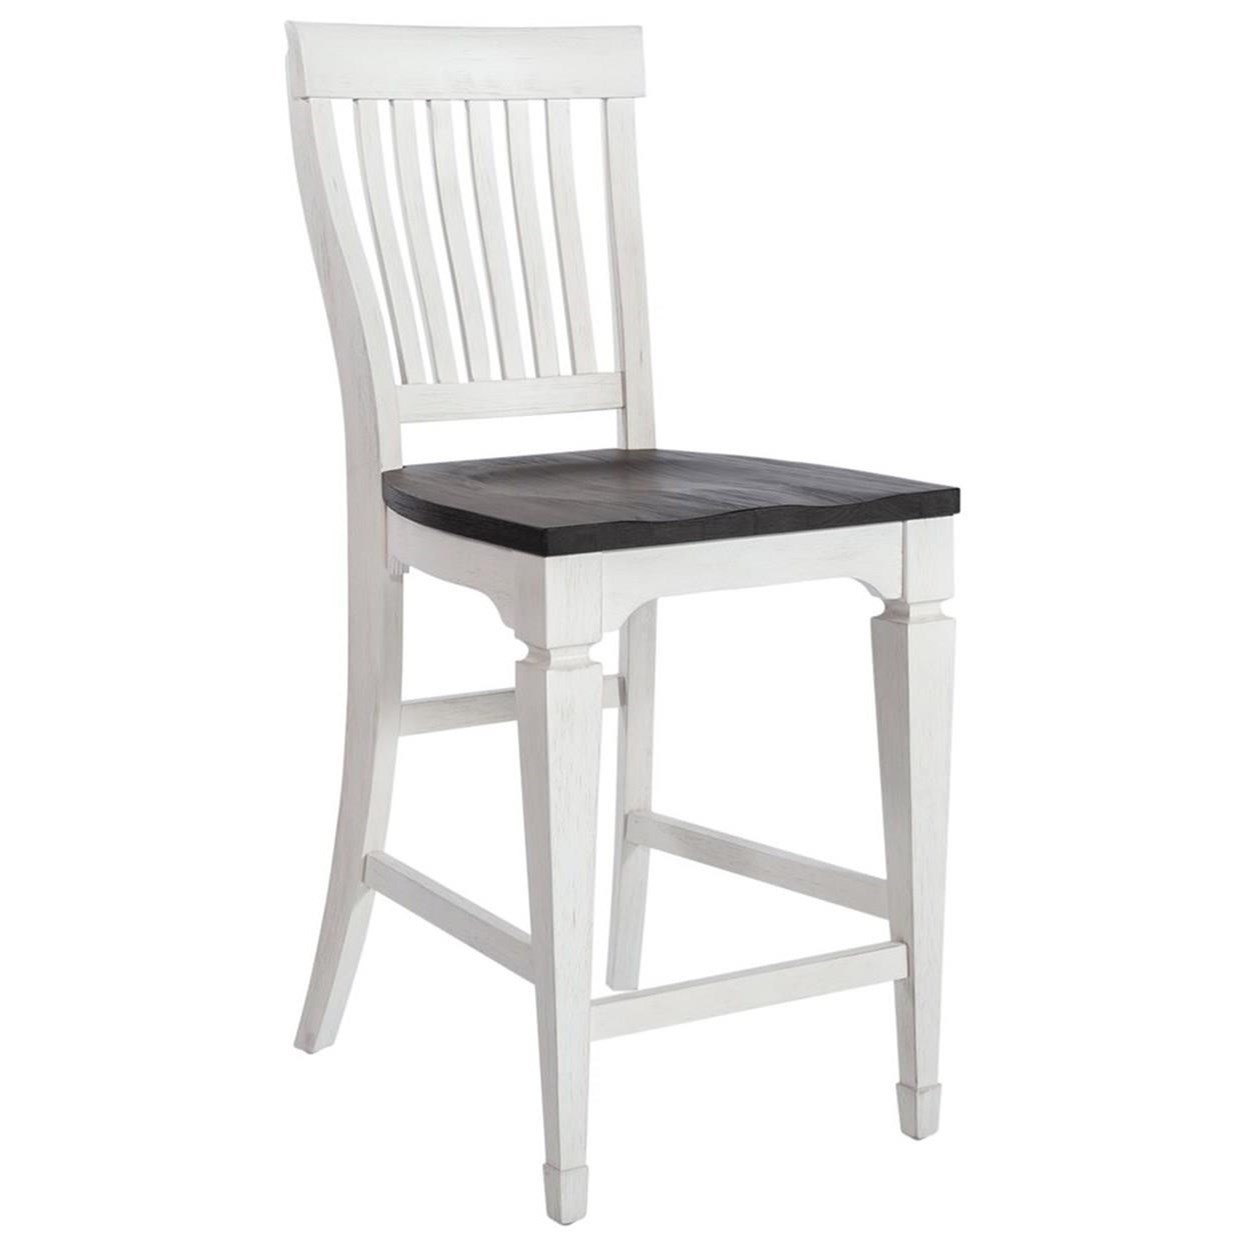 Allyson Park Counter Height Slat Back Chair by Liberty Furniture at Pilgrim Furniture City